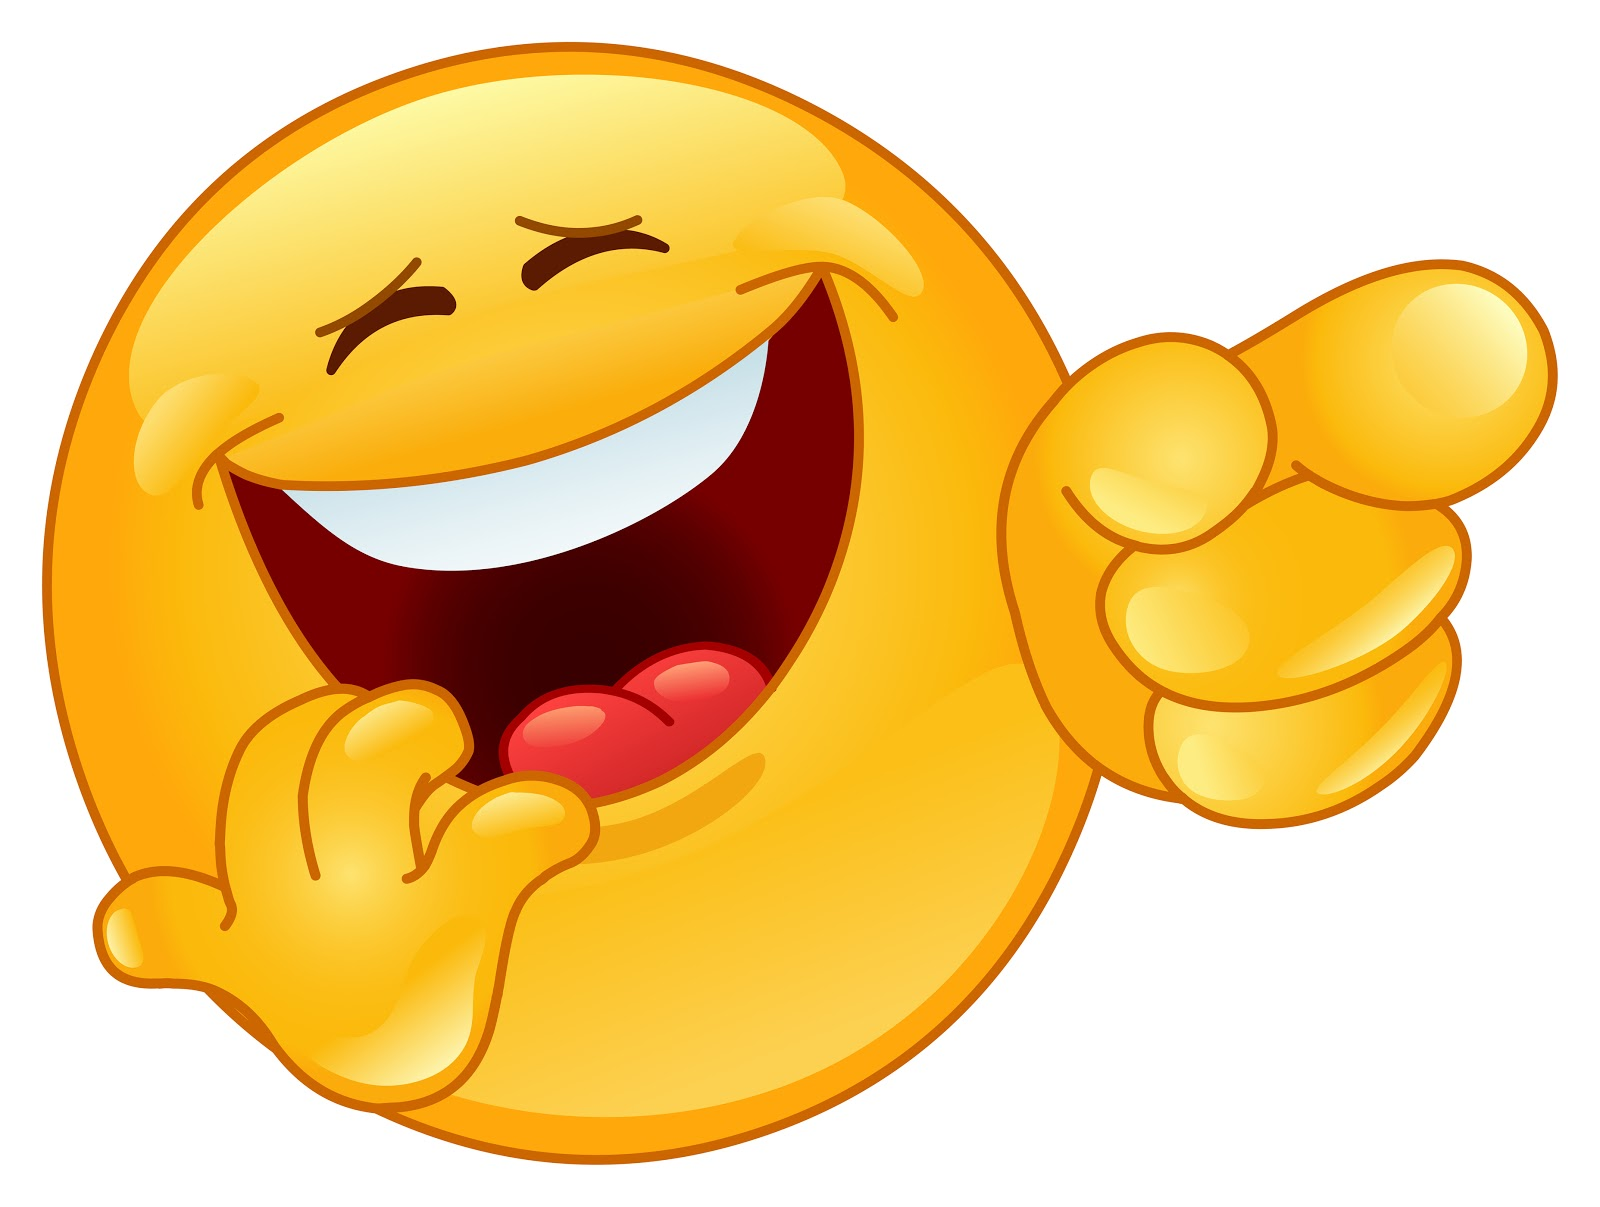 Clipart laughing face